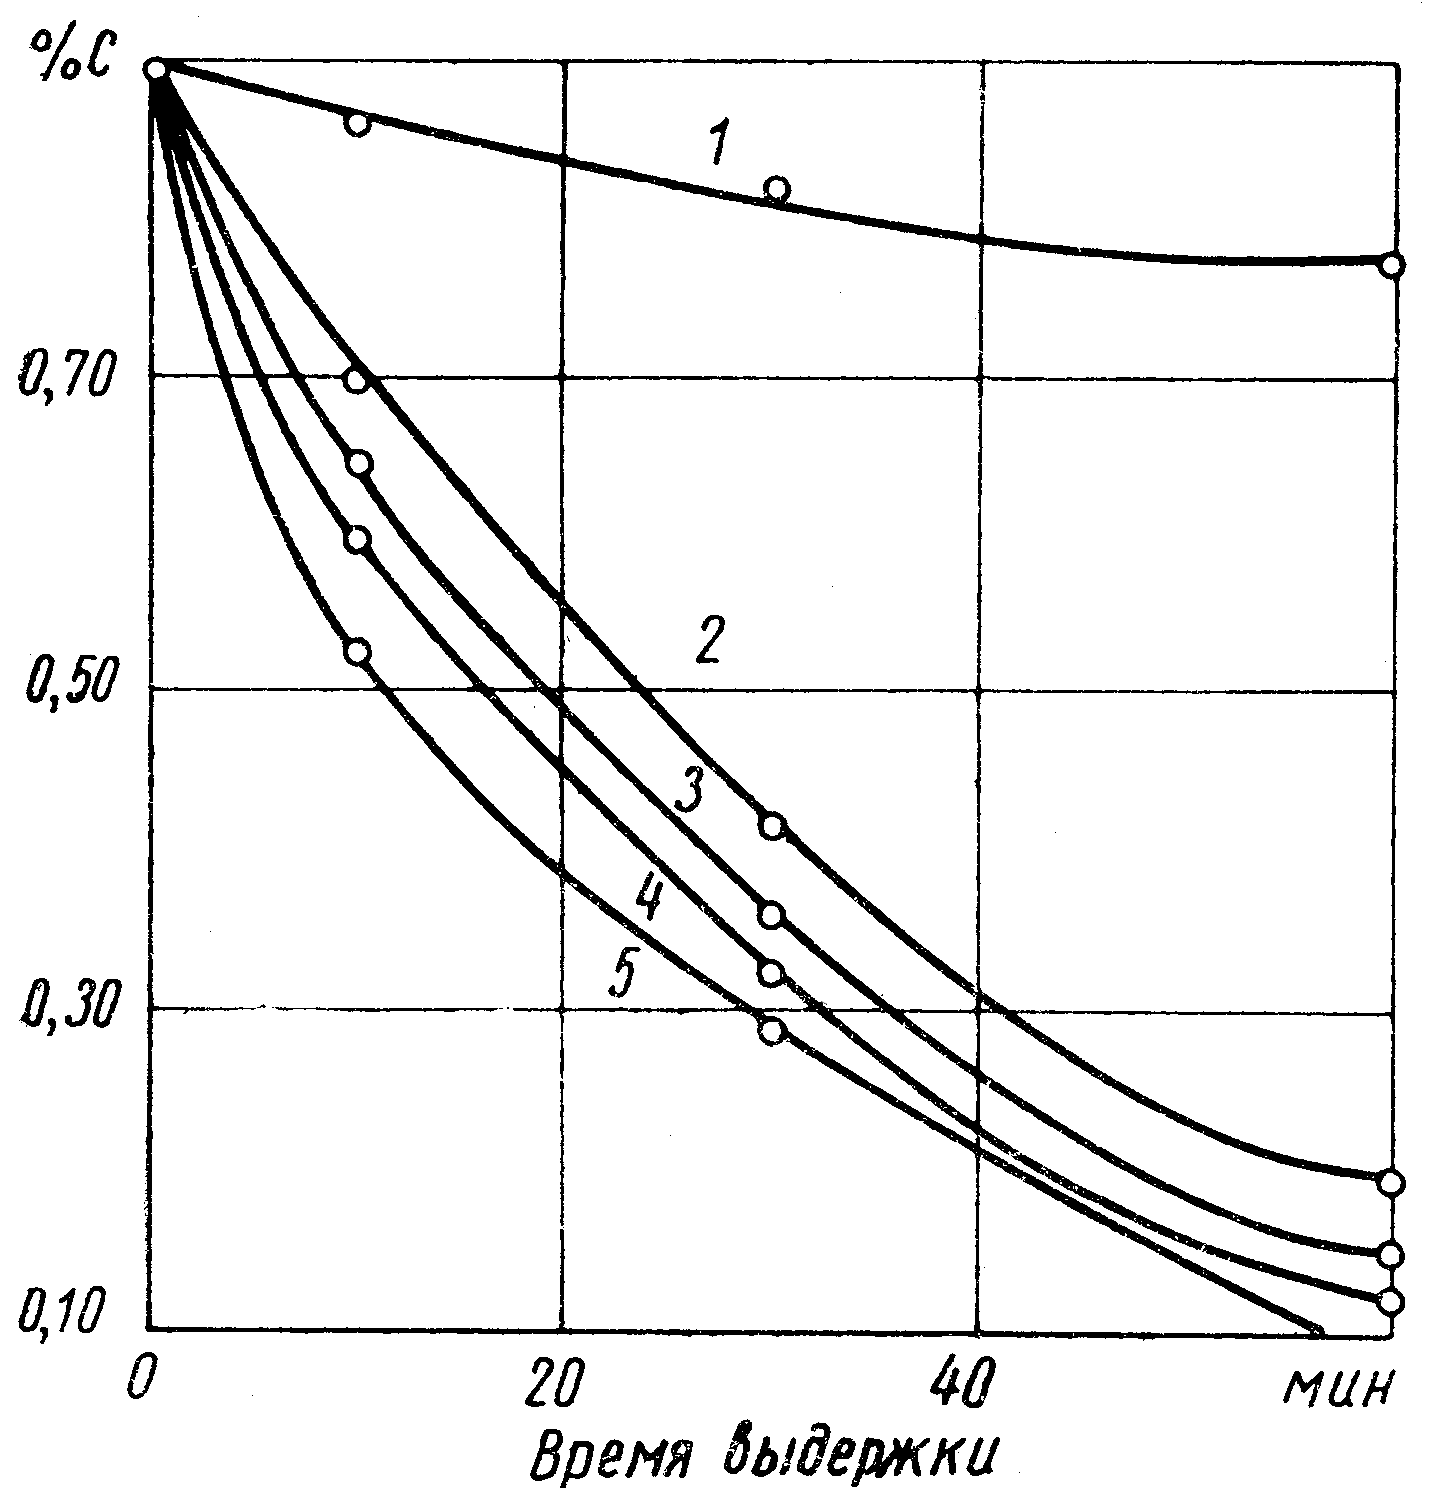 The change in carbon content in the tape of steel U9A depending on the exposure time in a protective environment